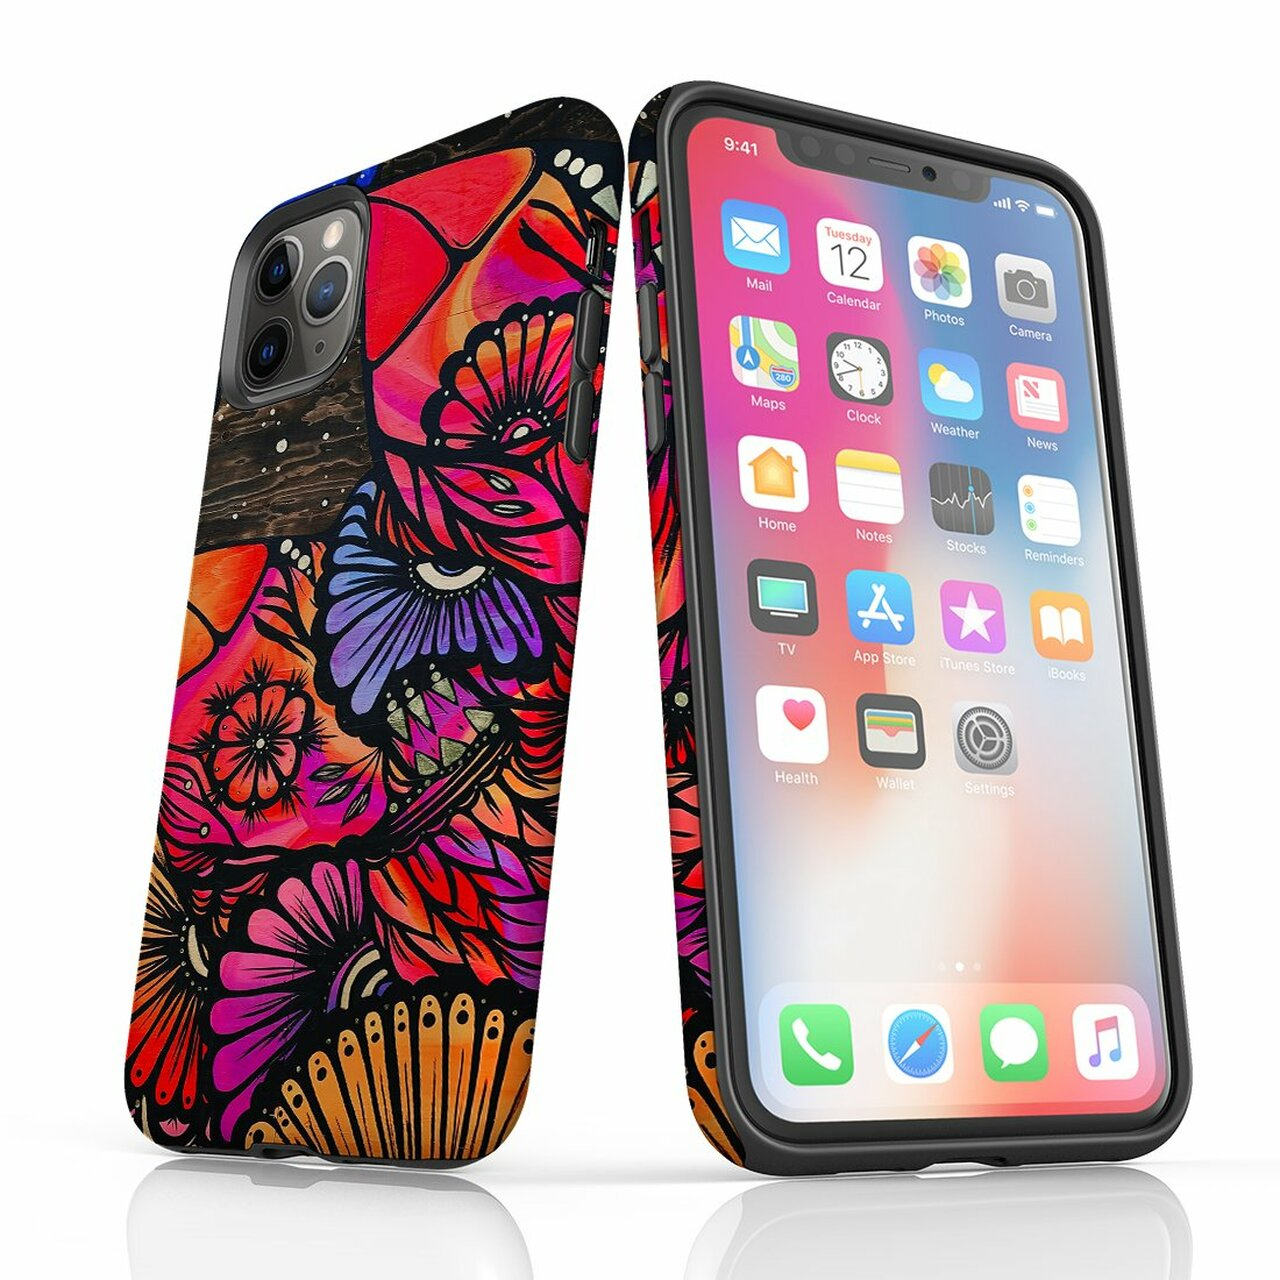 iphone 11 pro max 11 pro 11 xs max xs x xr 8 7 6 plus se 5s 5 protective case abstract wallpaper red blue